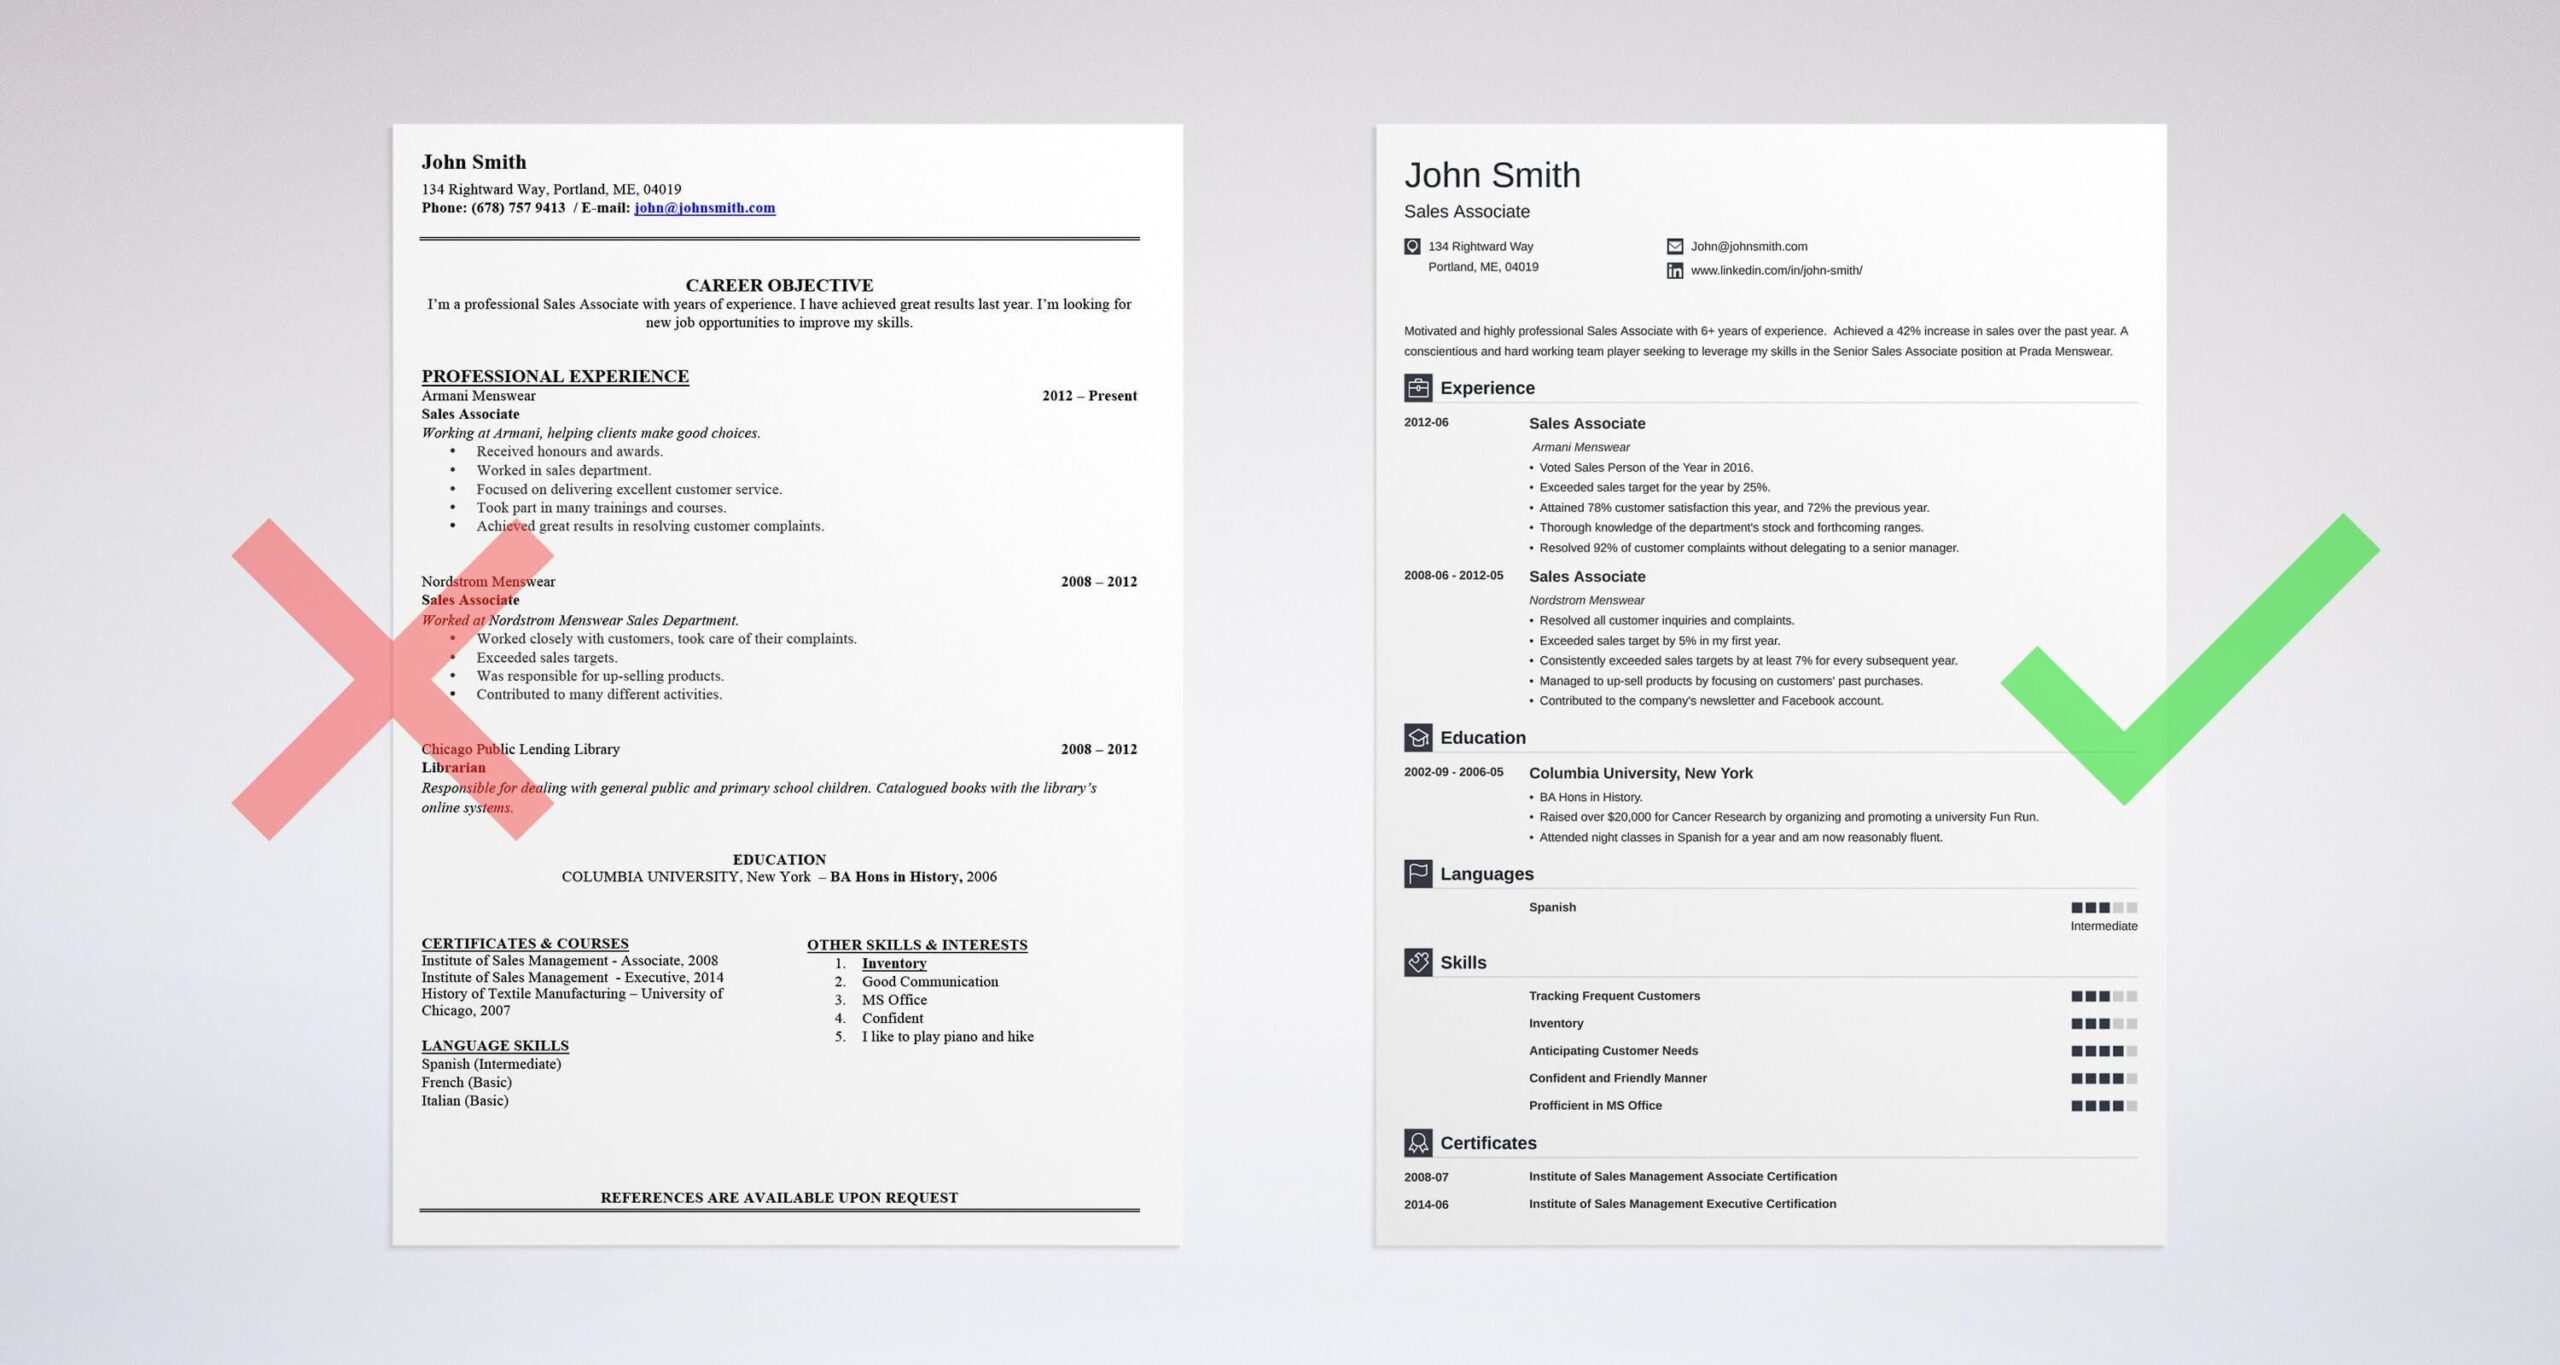 professional resume summary examples statements for experience on template light scribe Resume Resume Summary Examples For Experience